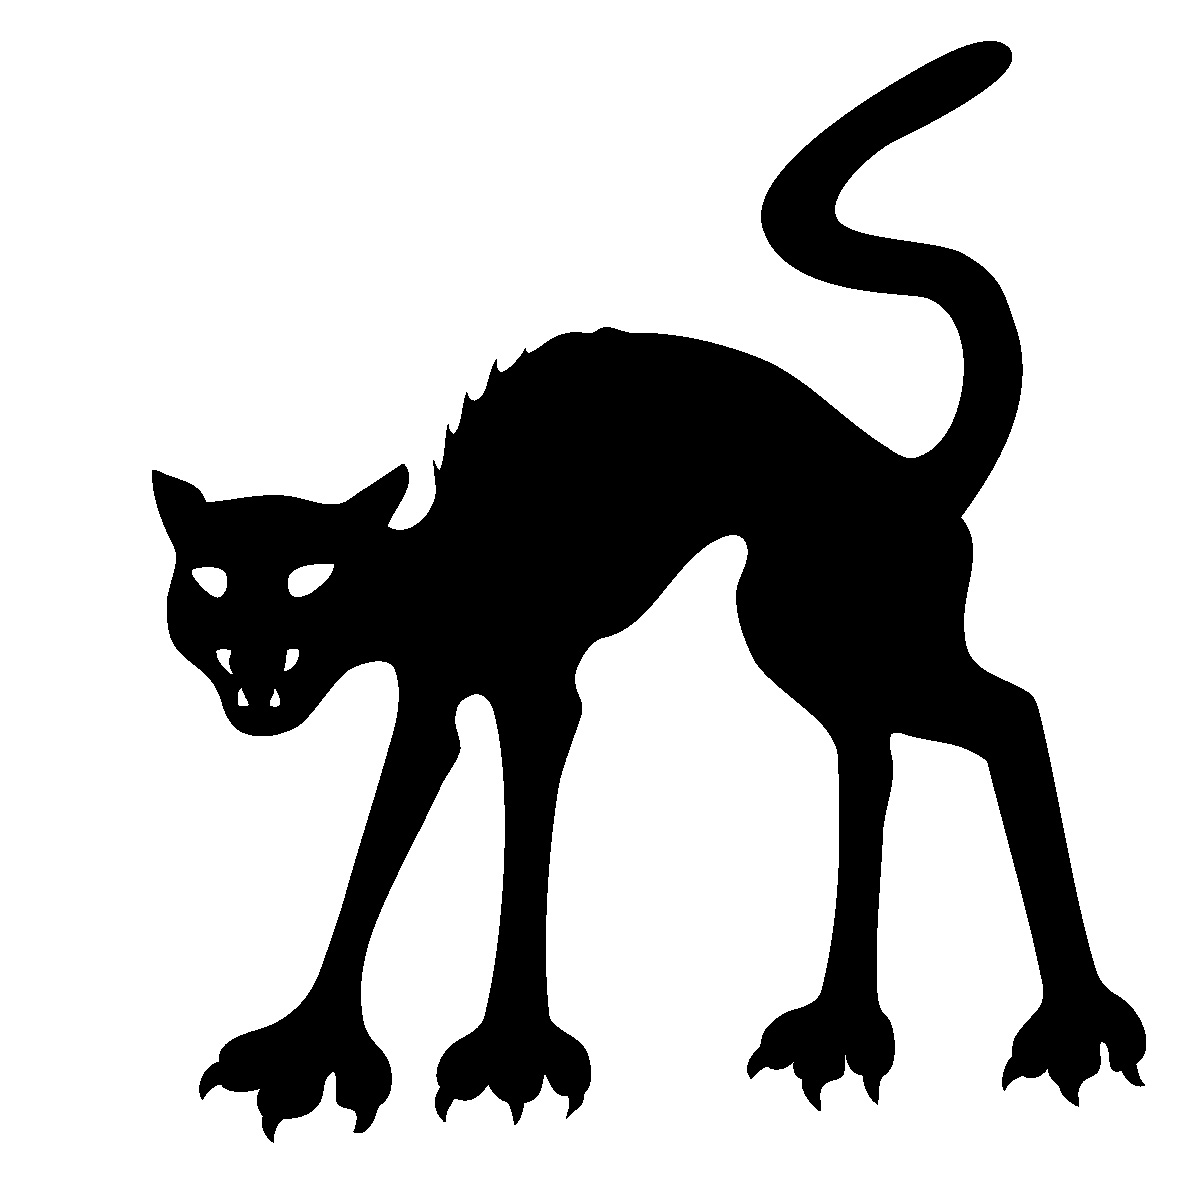 hight resolution of halloween cat silhouette clip art halloween wallpapers 2014